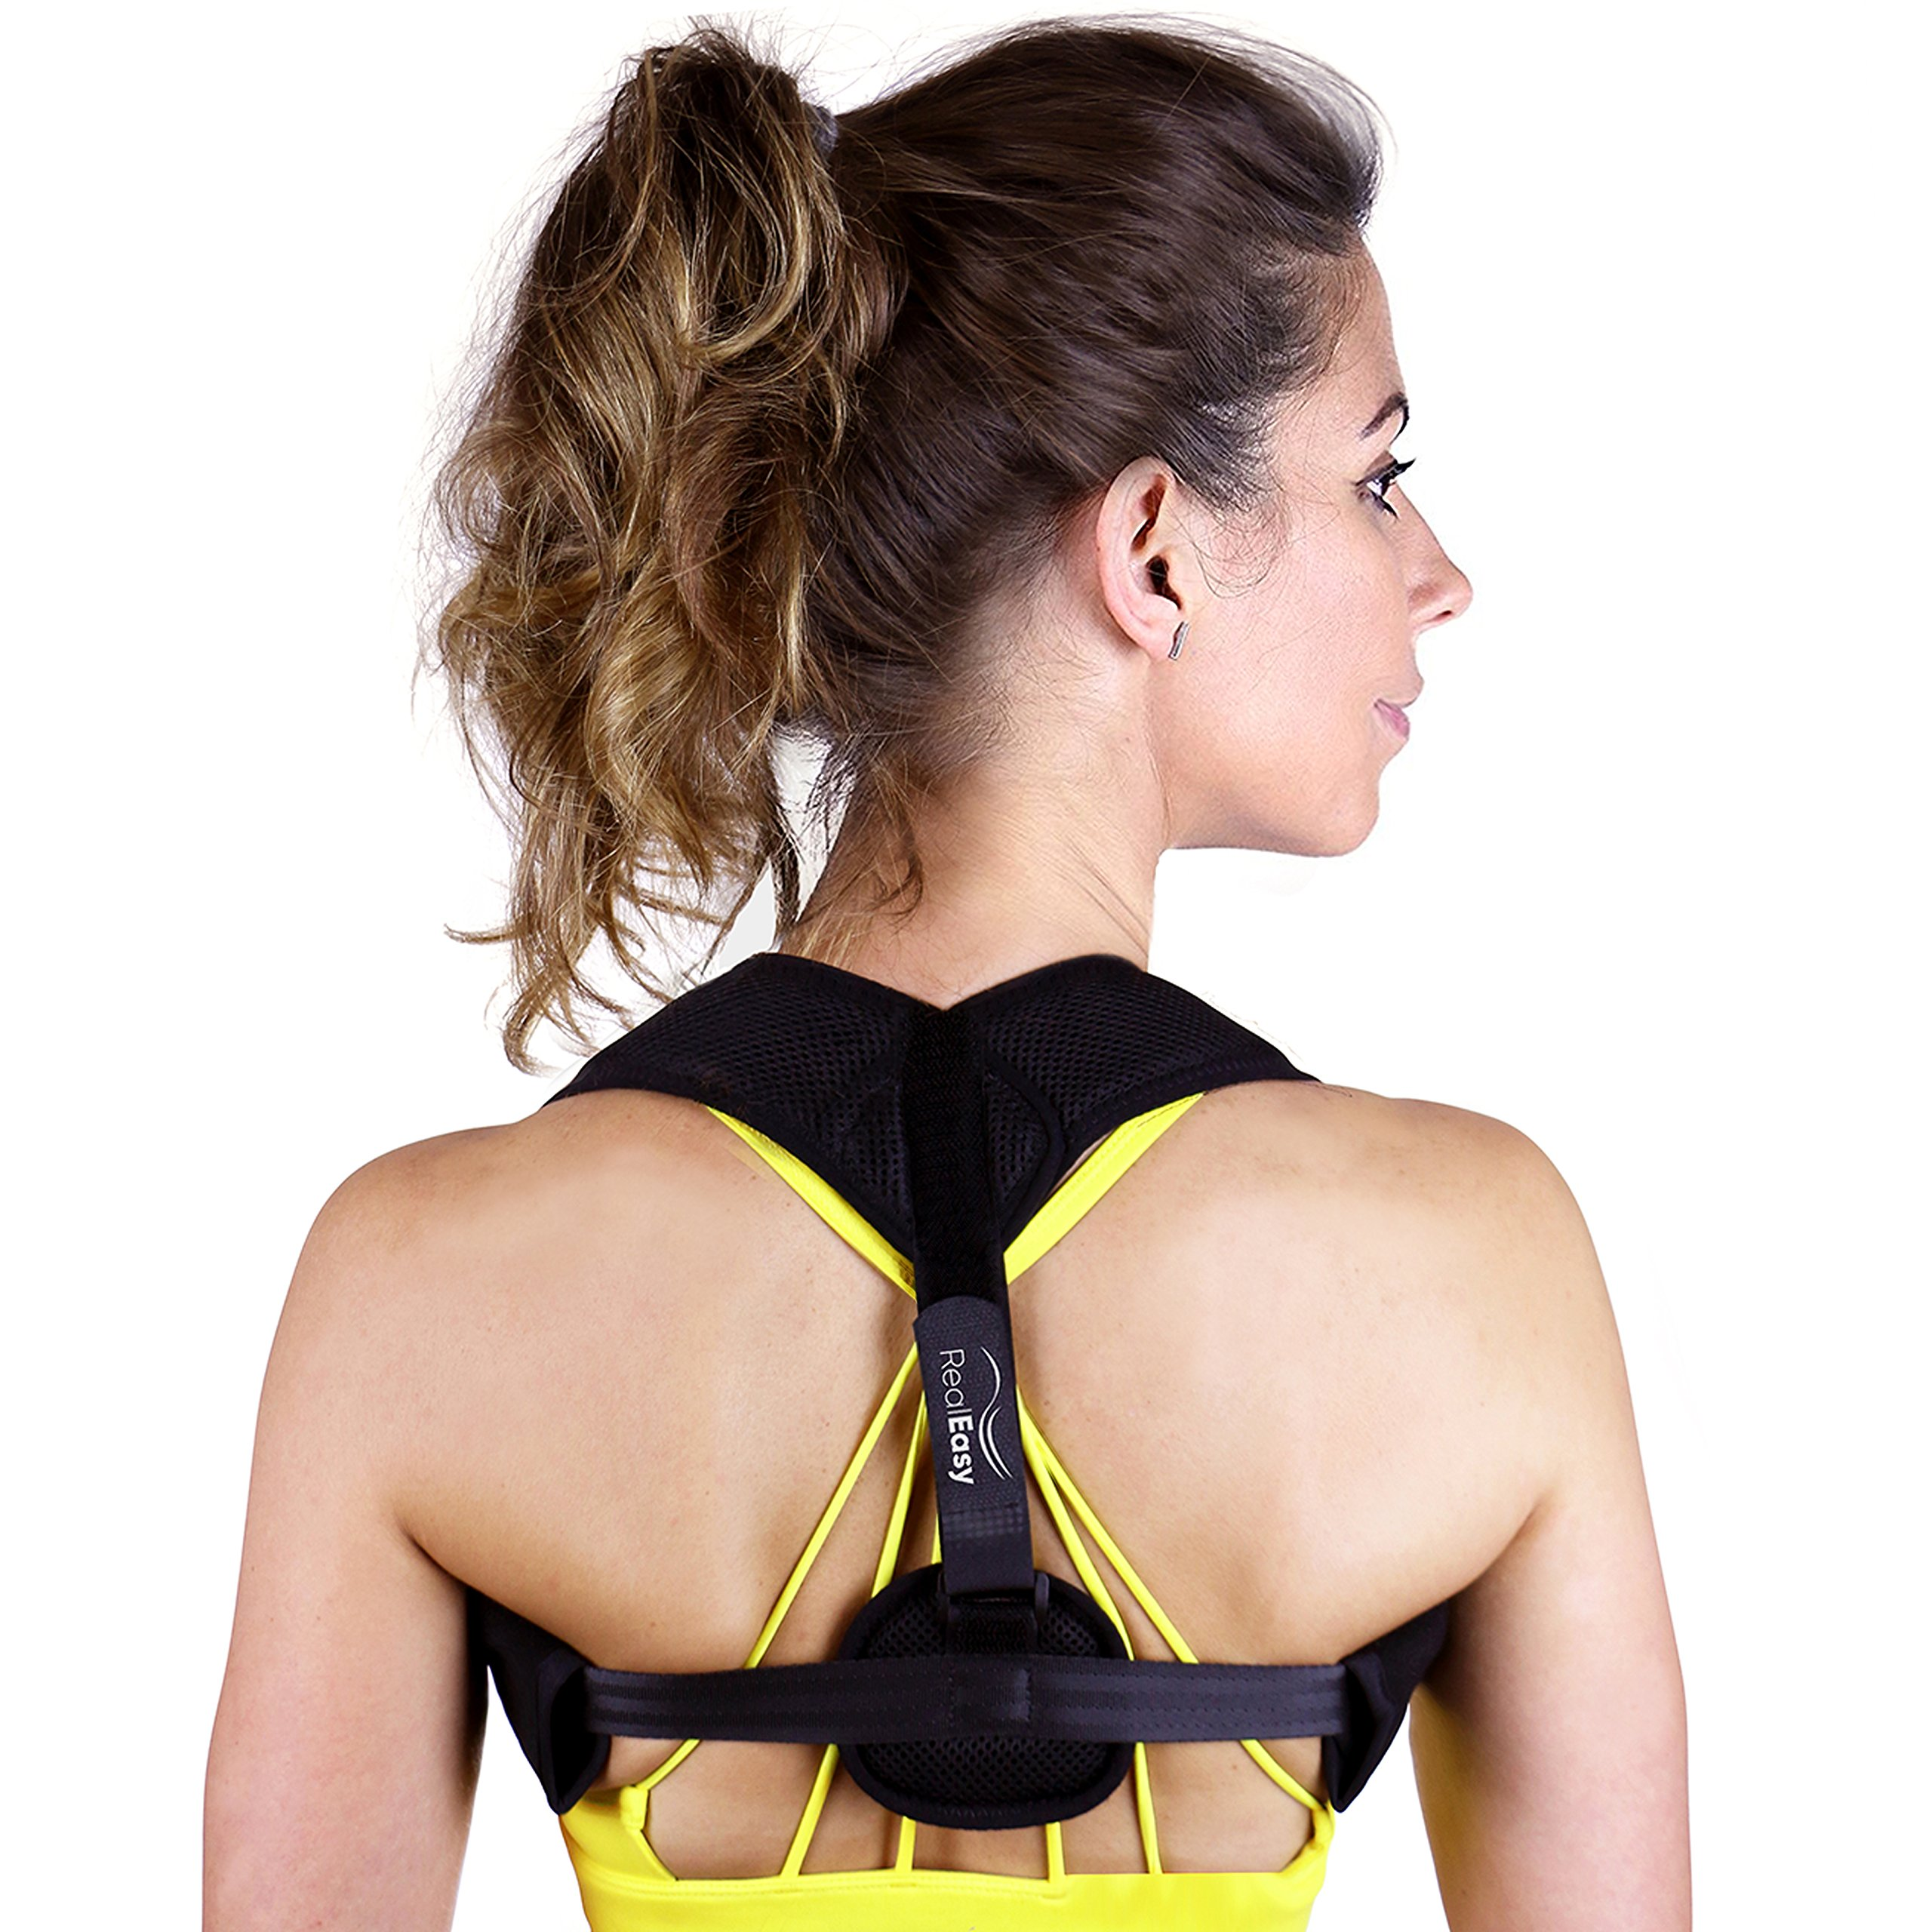 Posture Corrector for Women & Men | Convenient Posture Brace for Slouching & Hunching | Breathable Back Brace for Posture Support - Improve Posture, Prevent Slouching, Reduce Neck & Back Pain